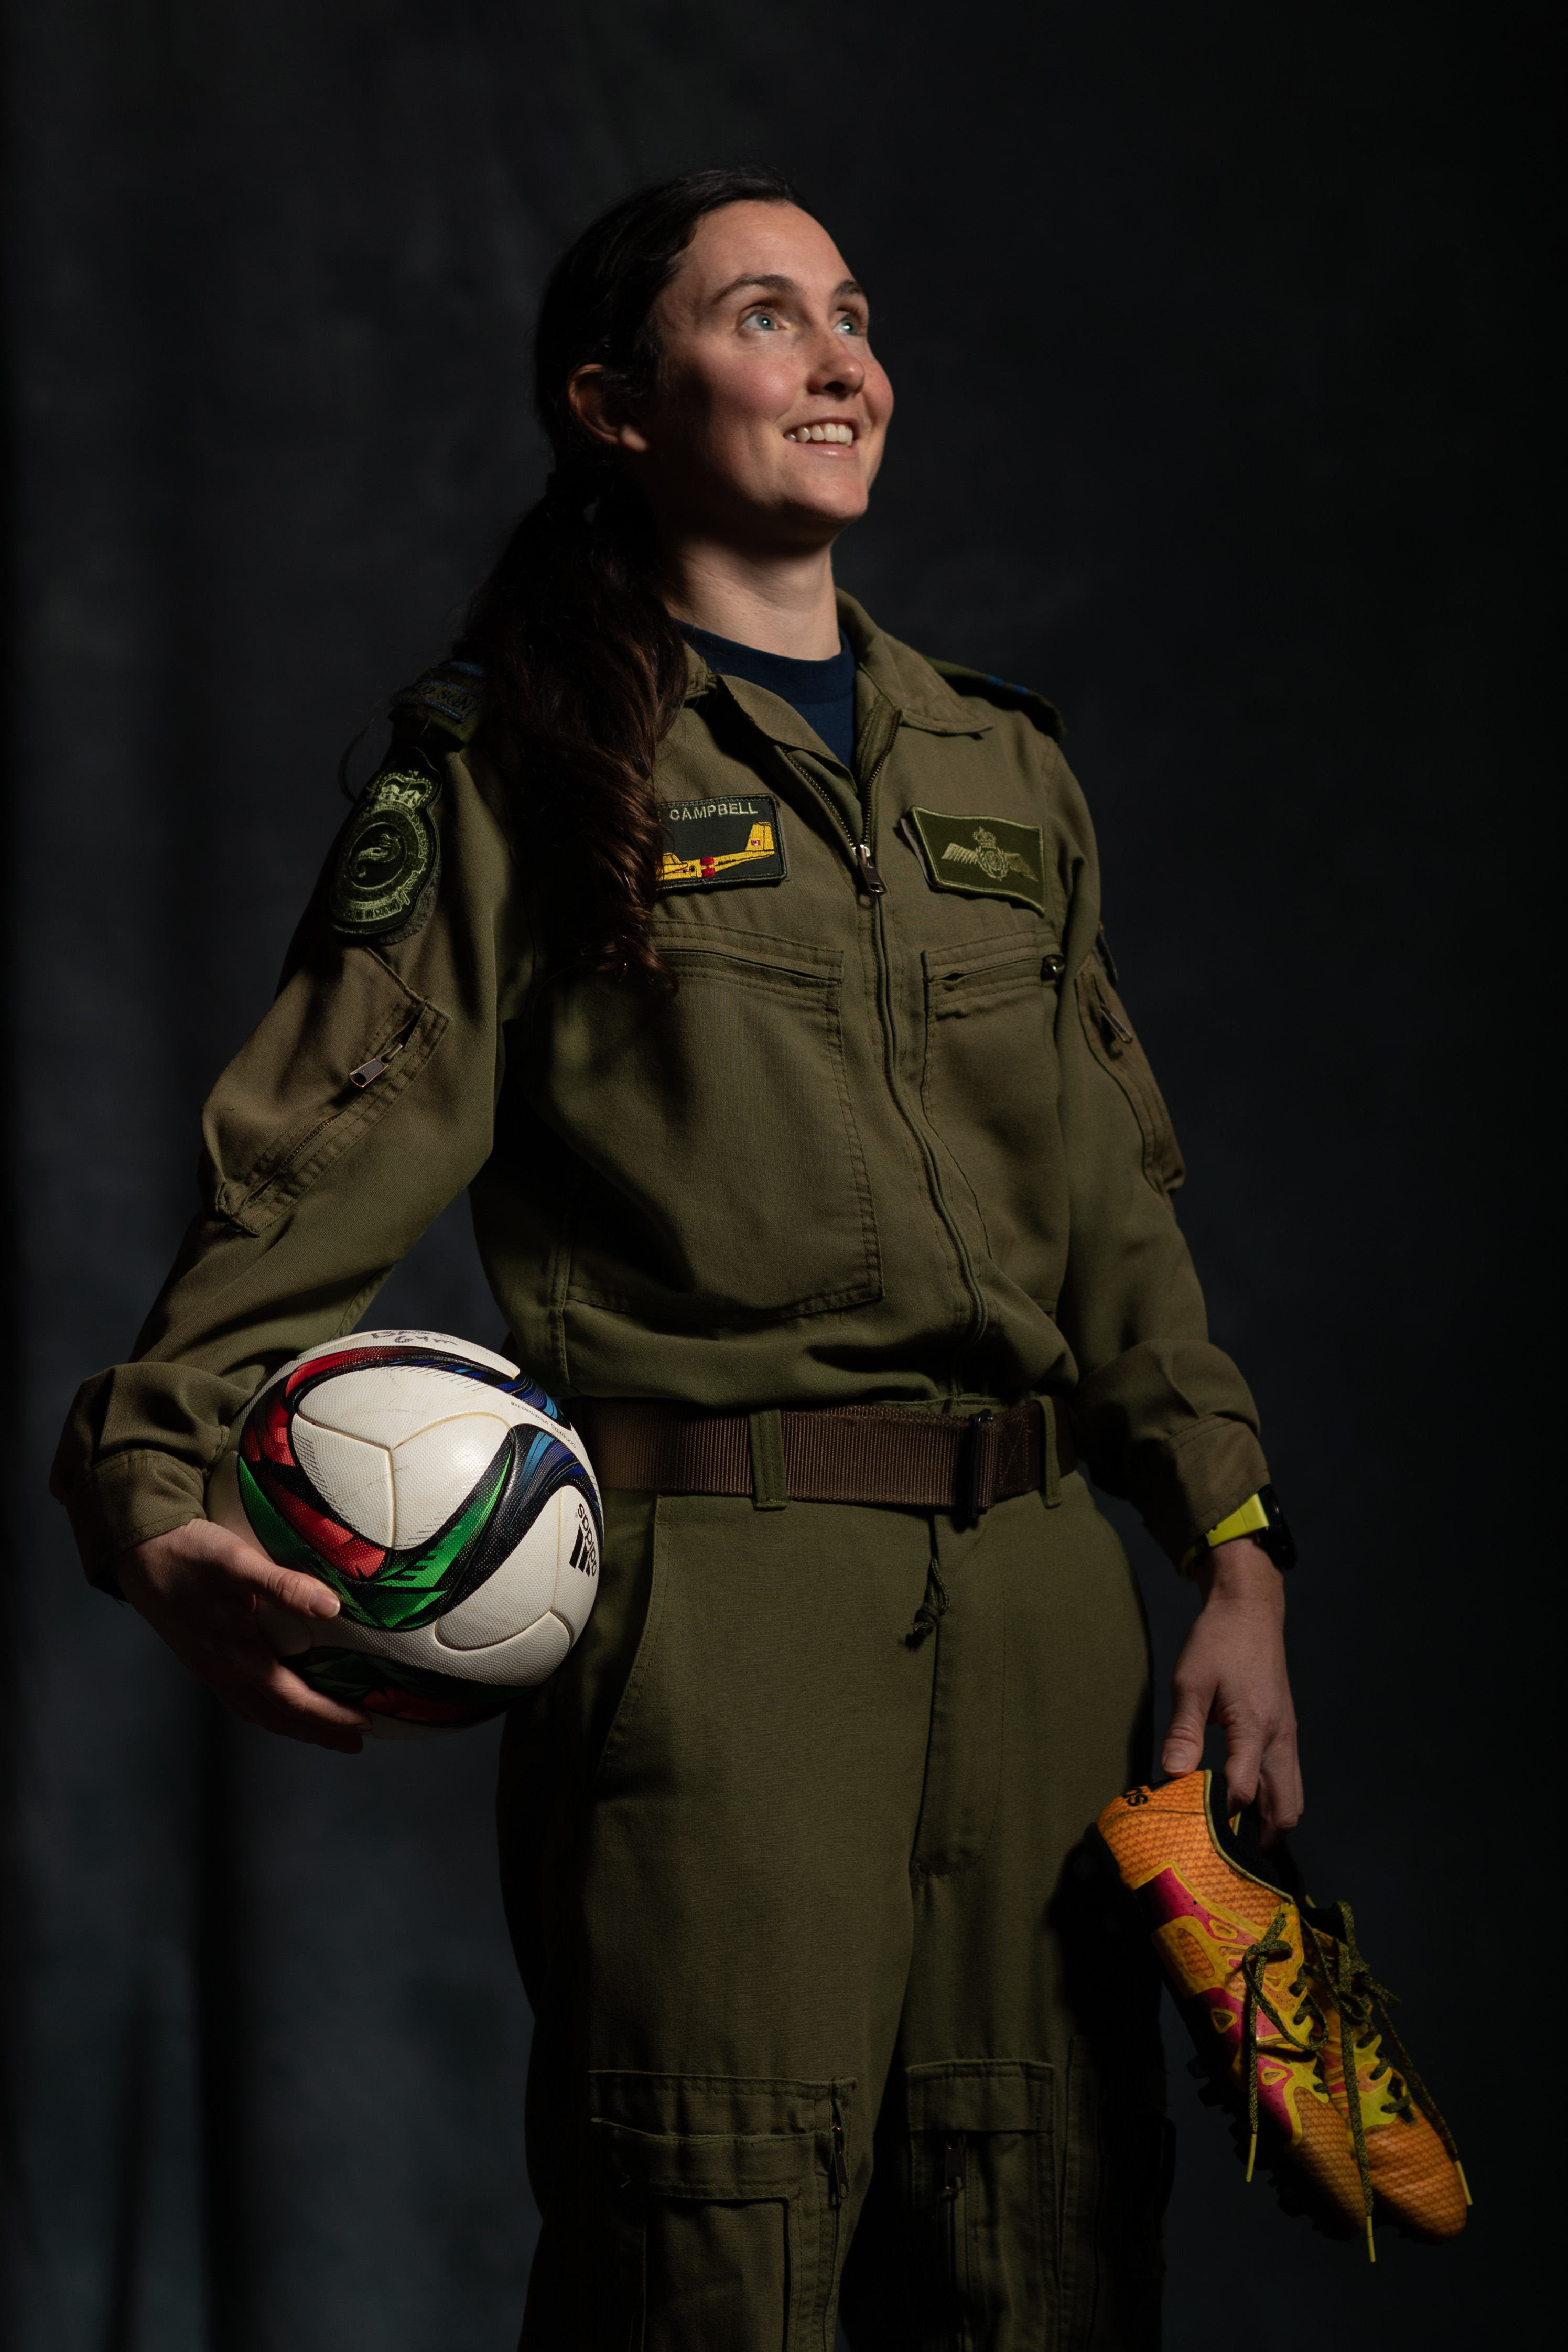 A smiling woman wearing an olive-green flight suit and holding a ball and sports shoes.